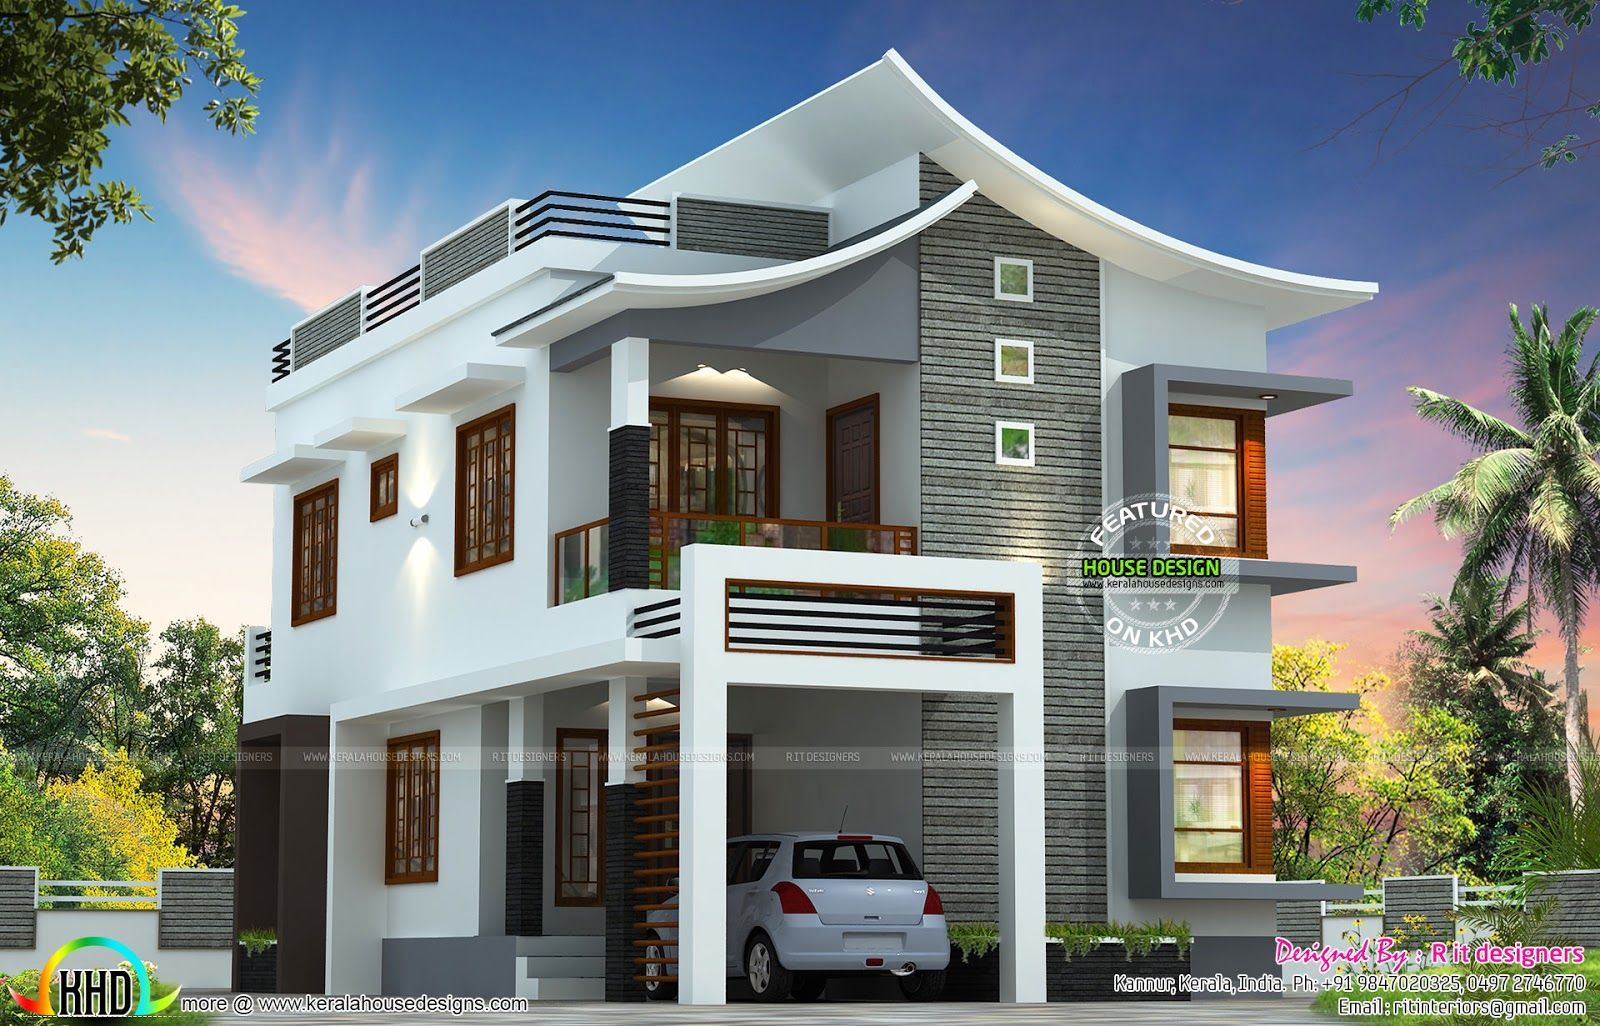 12 Unearthly Roofing Diy Ideas House Roof Design Kerala House Design Latest House Designs